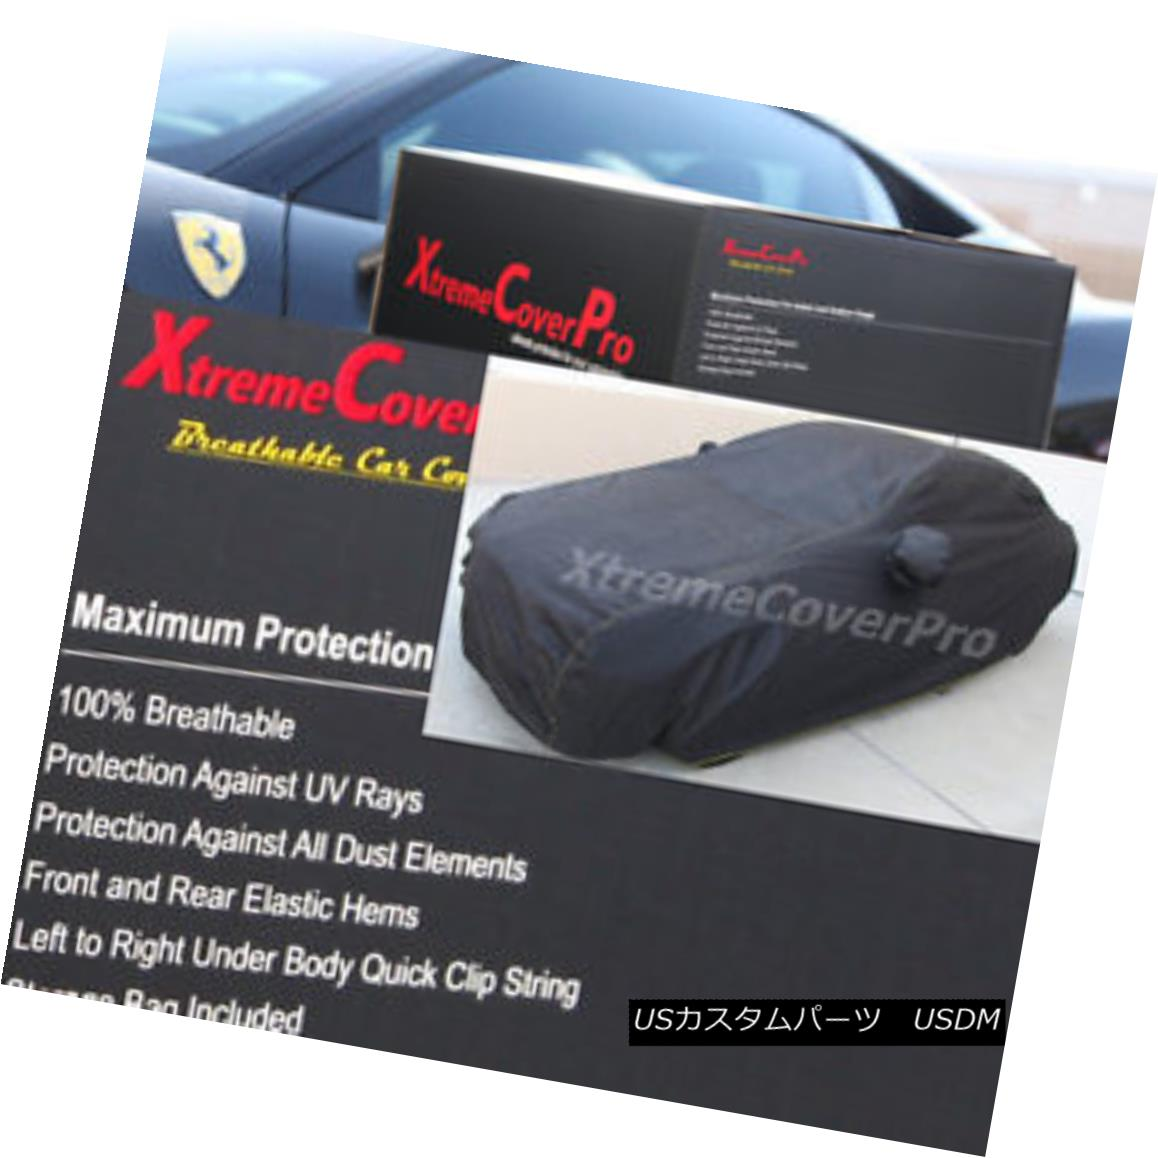 カーカバー BREATHABLE CAR COVER W/MIRROR POCKET-BLACK FOR 2018 2017 2016 2015 NISSAN VERSA 2018年のブレイターブルカーカバーWIR / MIRROR POCKET-BLACK 2017 2016 2015 NISSAN VERSA